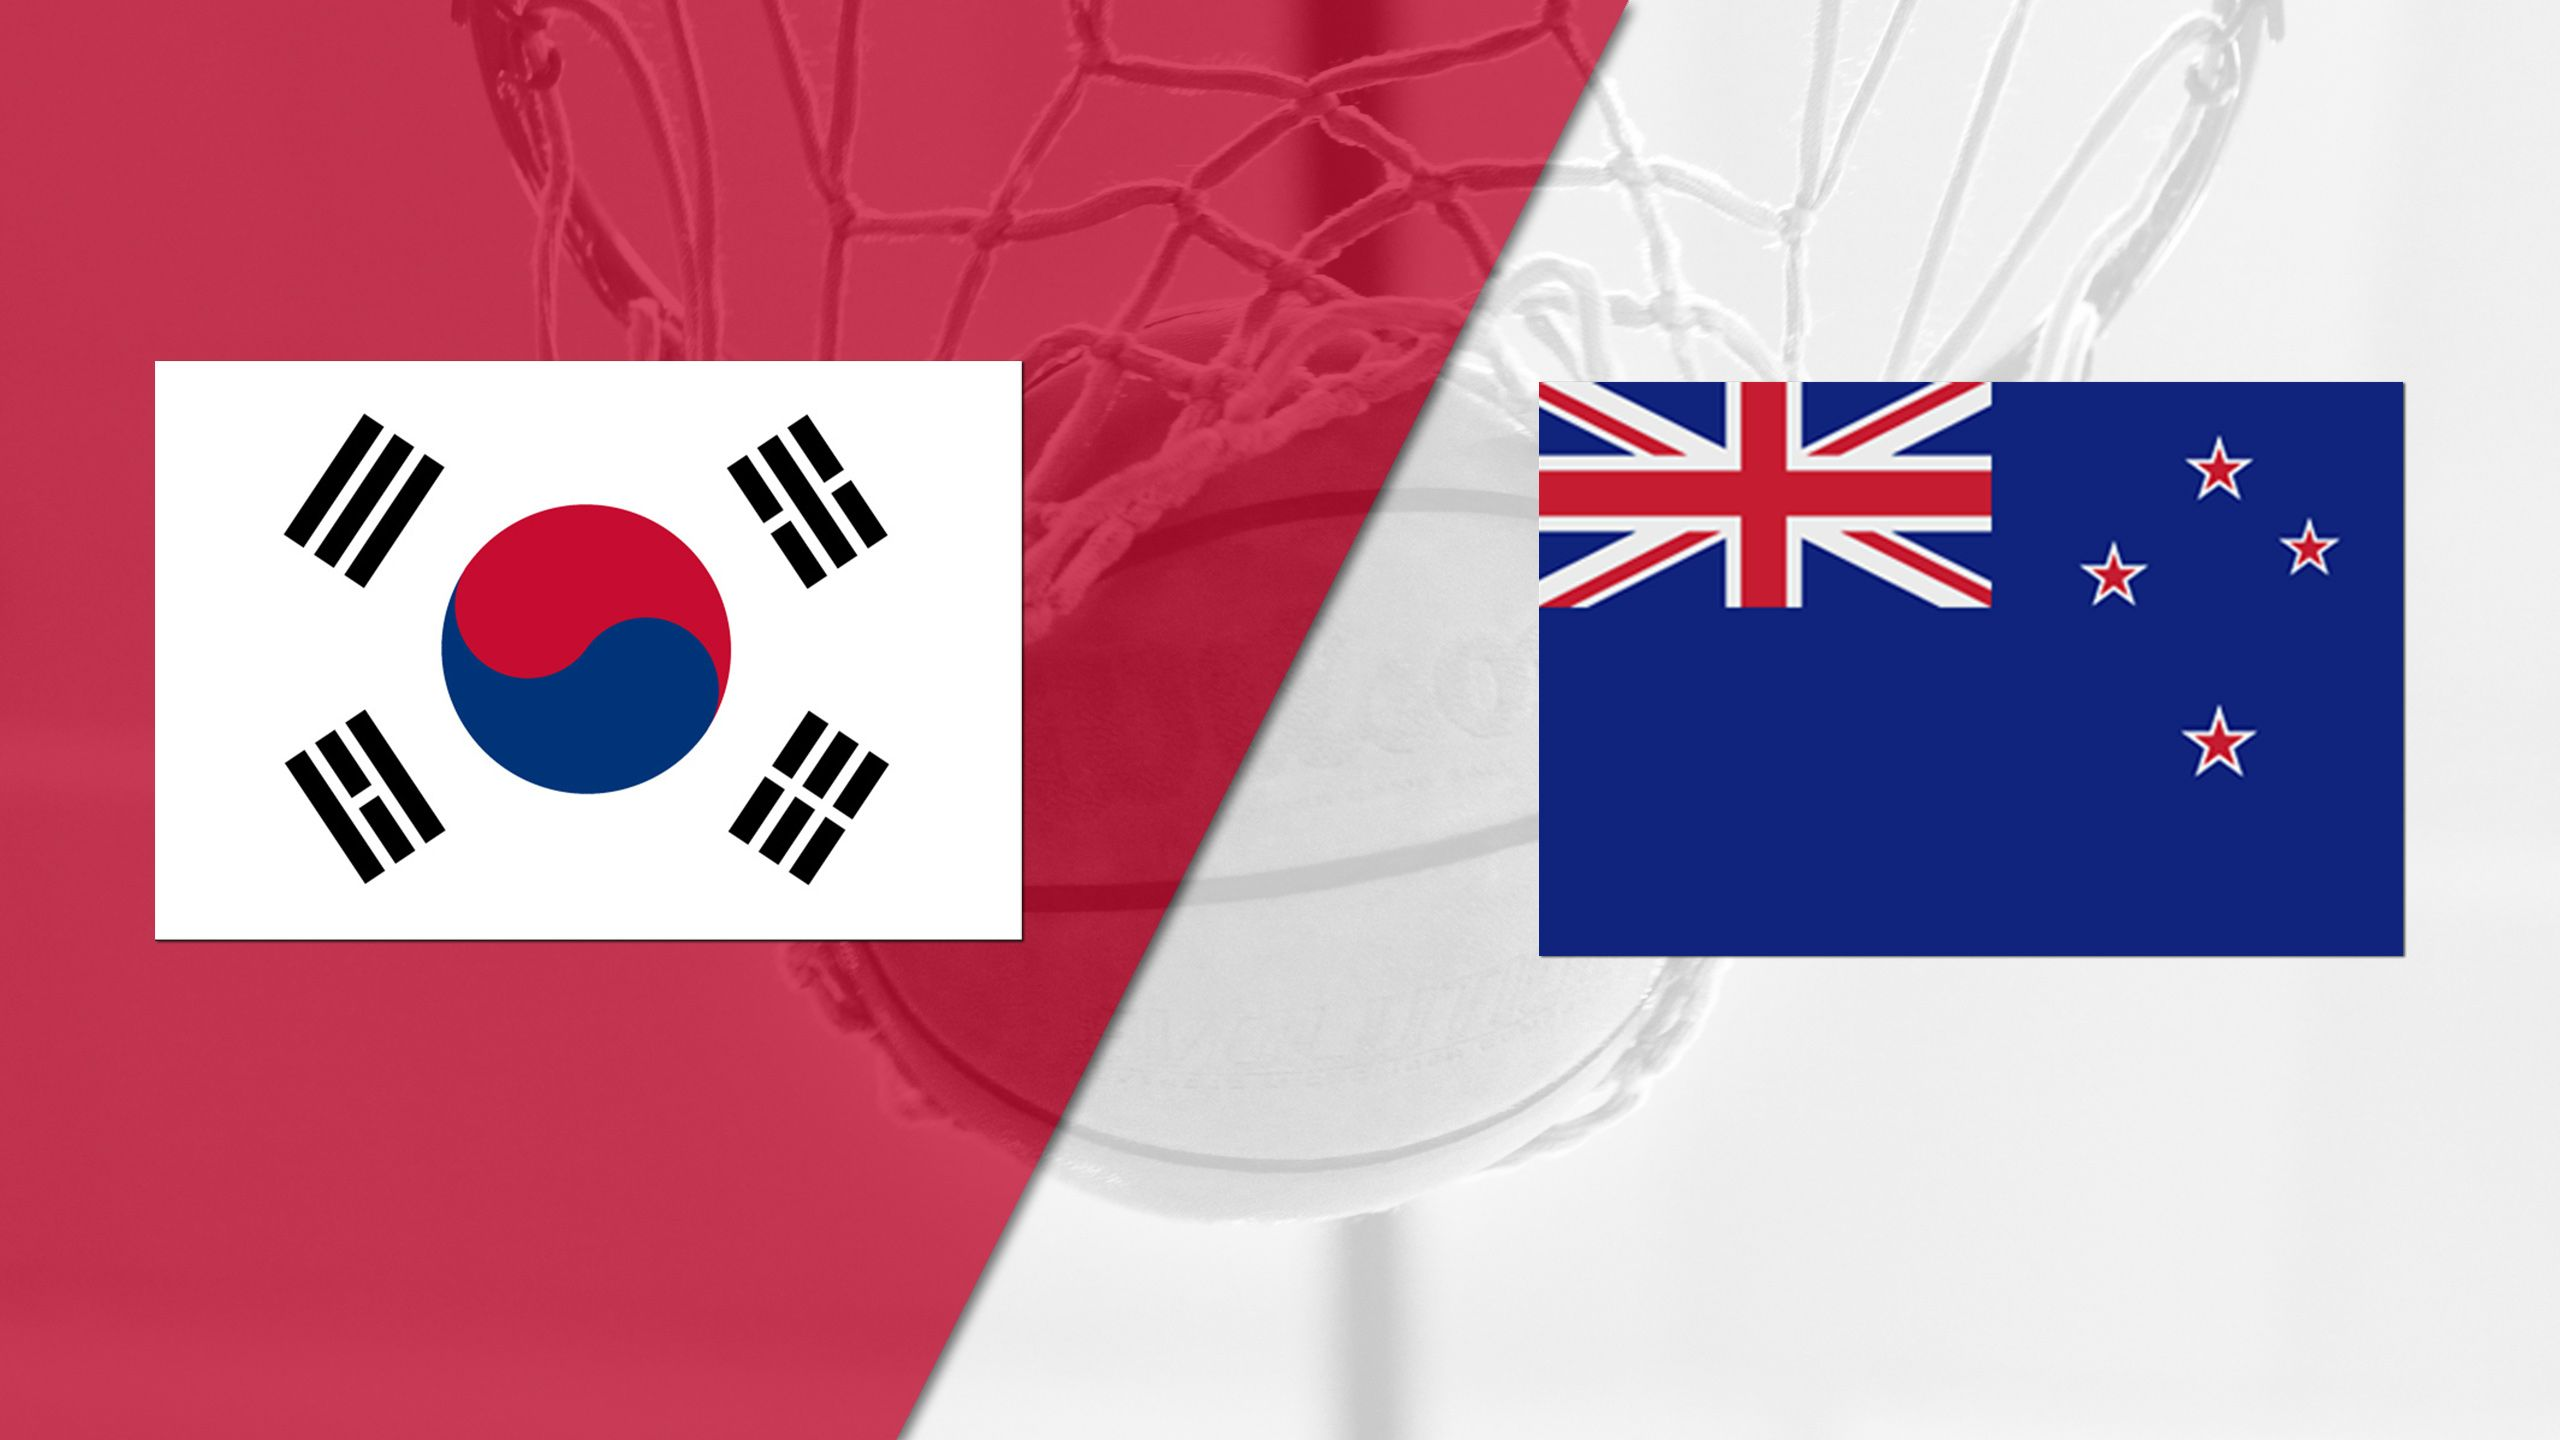 Korea vs. New Zealand (FIBA World Cup 2019 Qualifier)